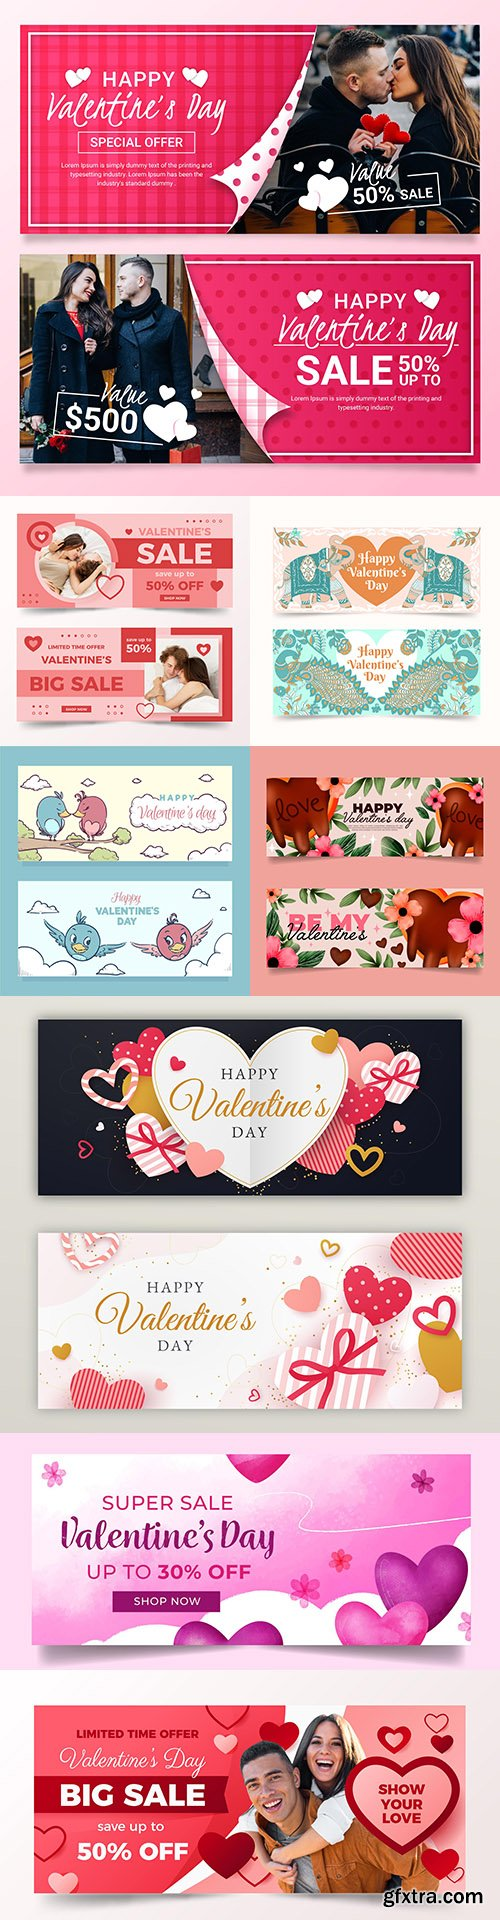 Valentine's Day banner and menu design template 2